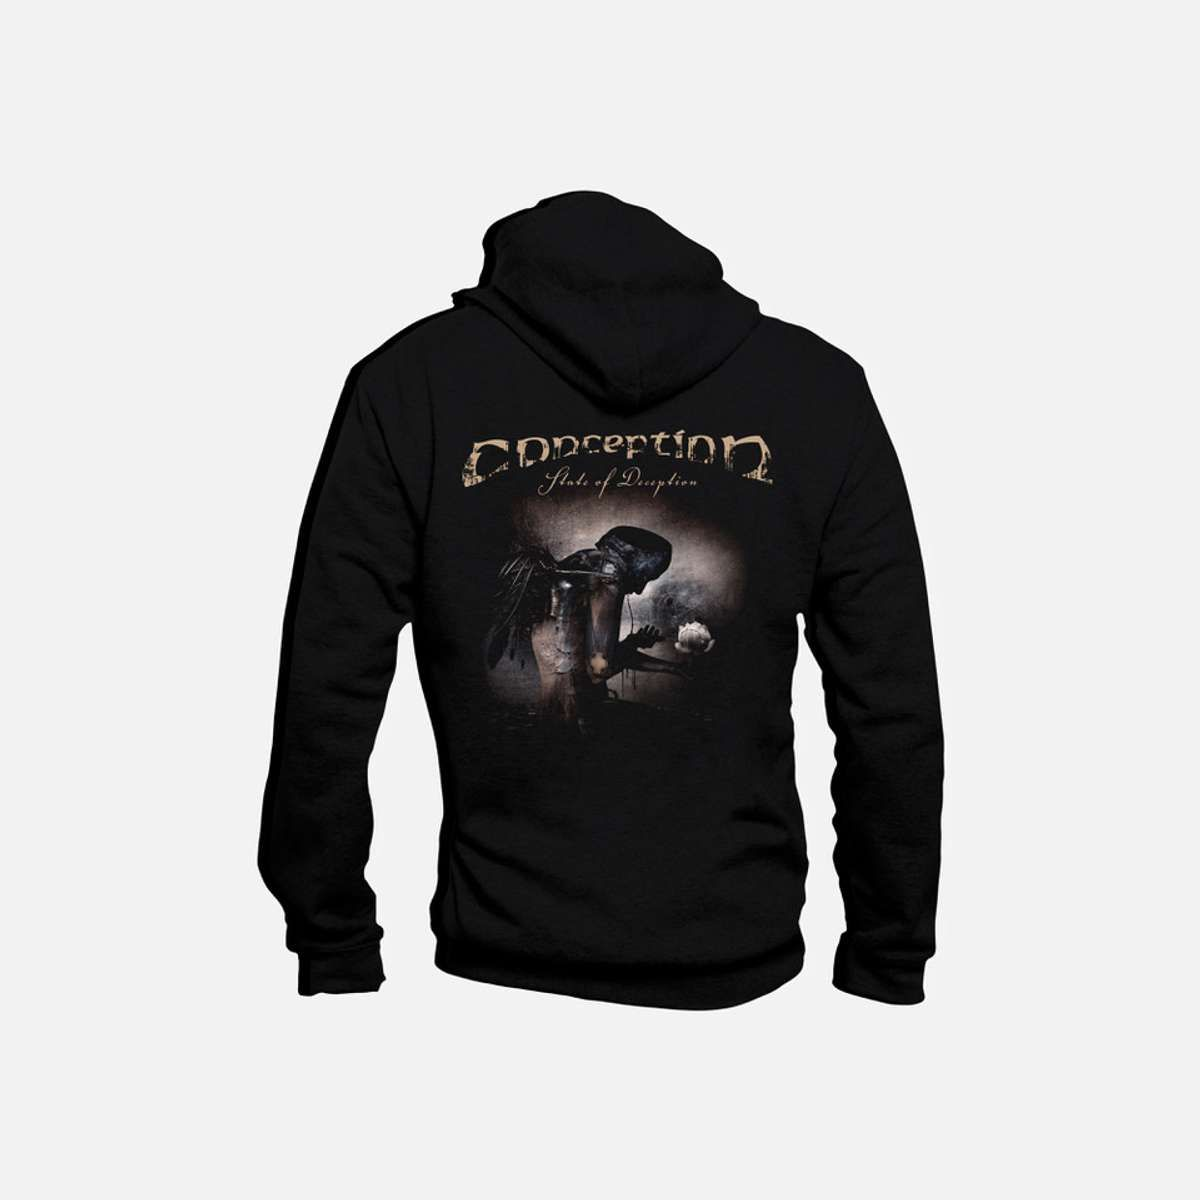 Brand new State of Deception design Conception zip-up hoodie - Conception